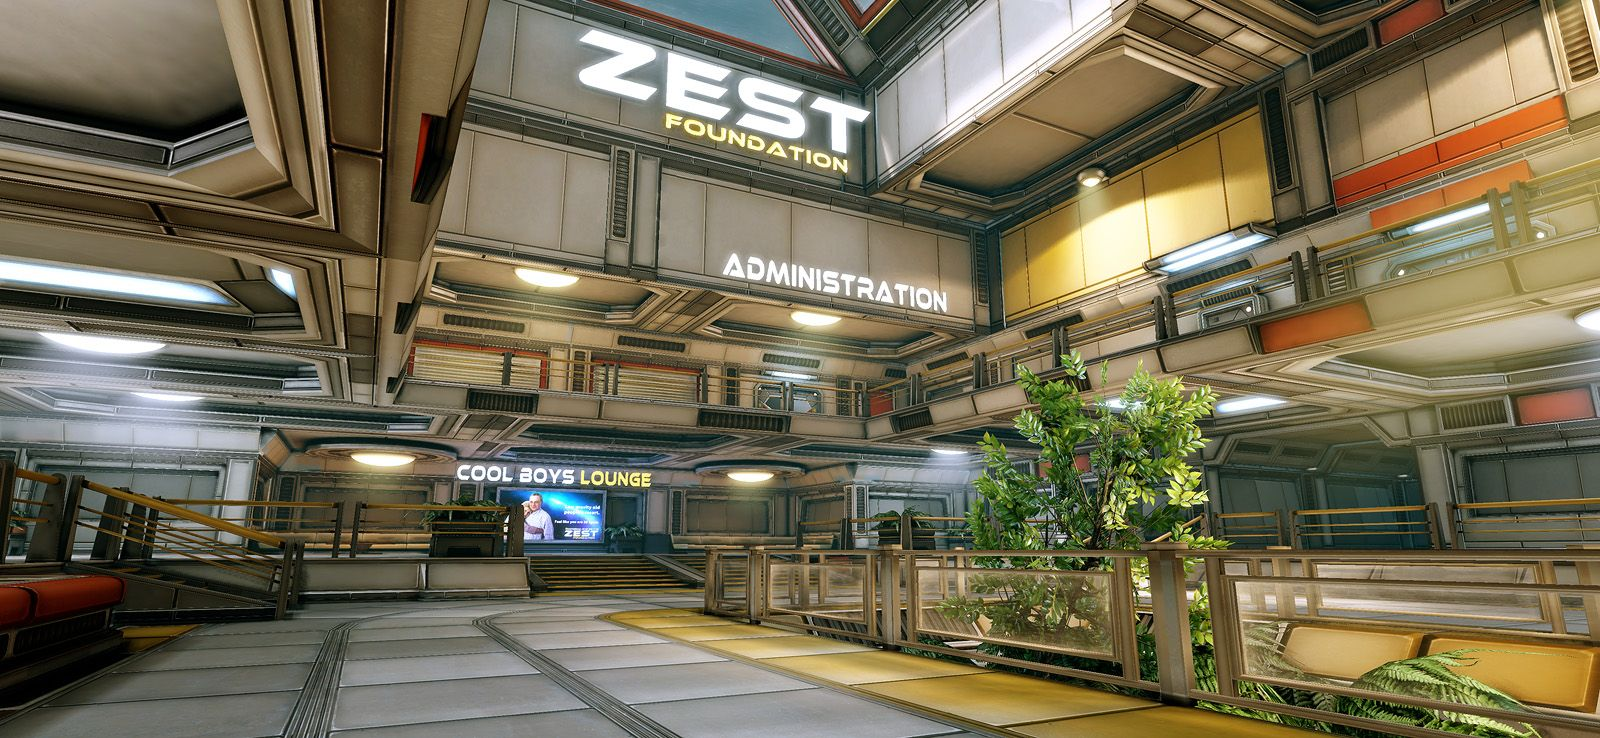 Hitech research facility (UDK environment) Spaceship